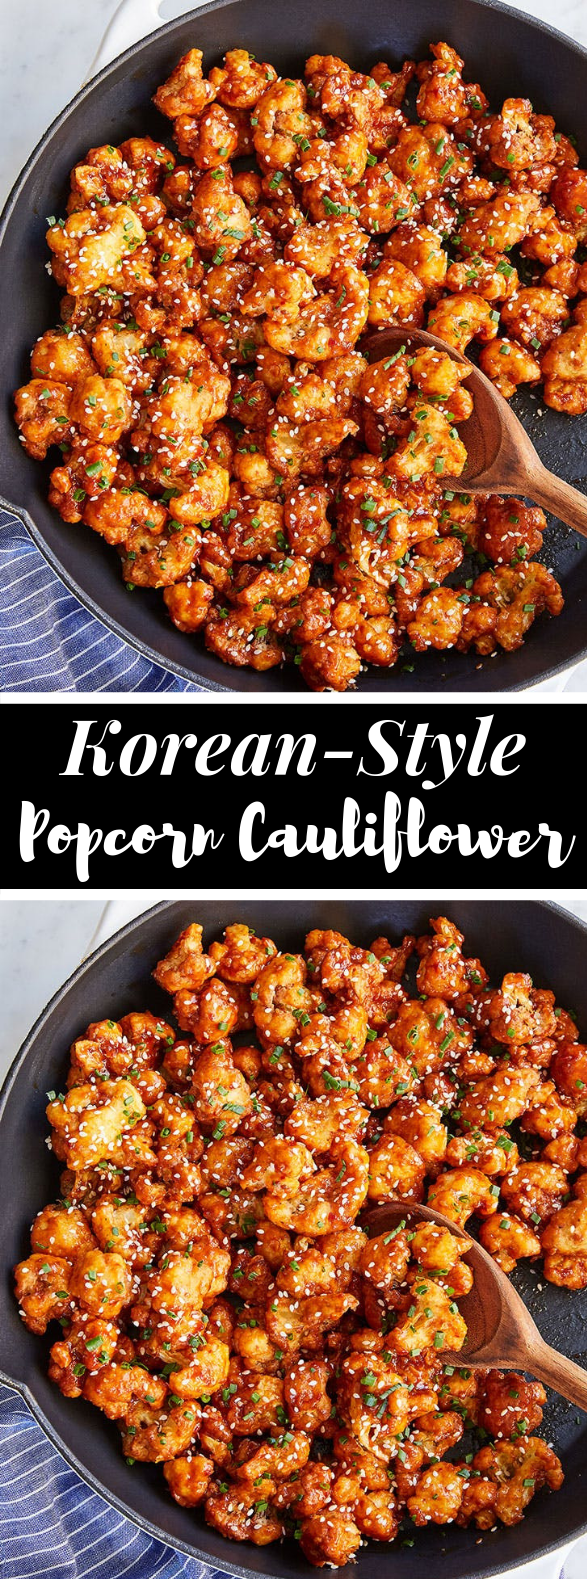 Korean-Style Popcorn Cauliflower #koreanrecipe #vegetarian